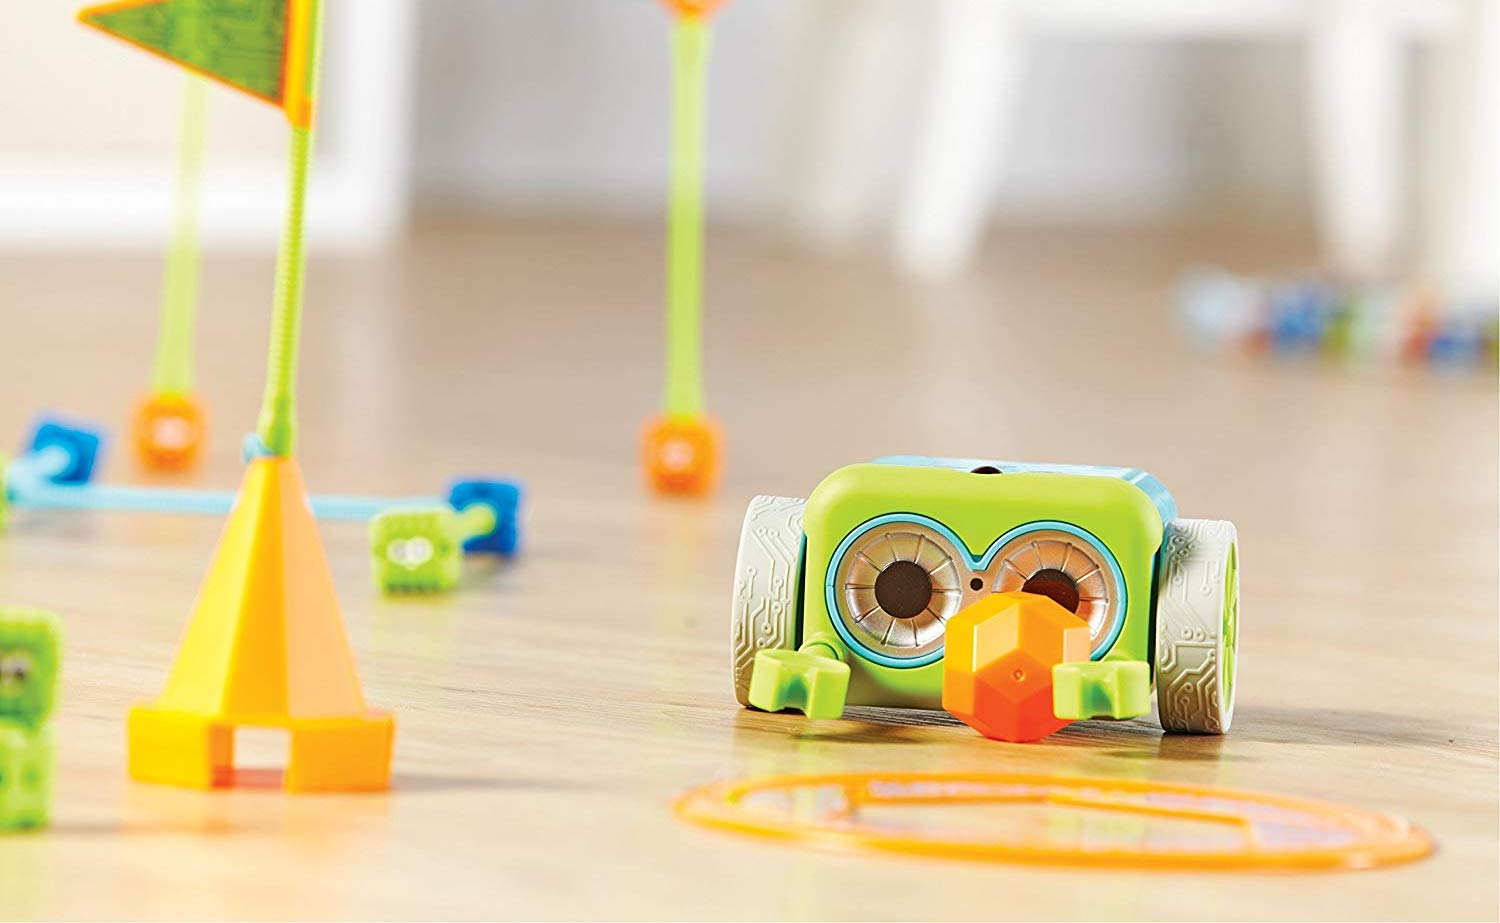 Learning Resources Botley The Coding Robot Activity Set teaches STEM through fun